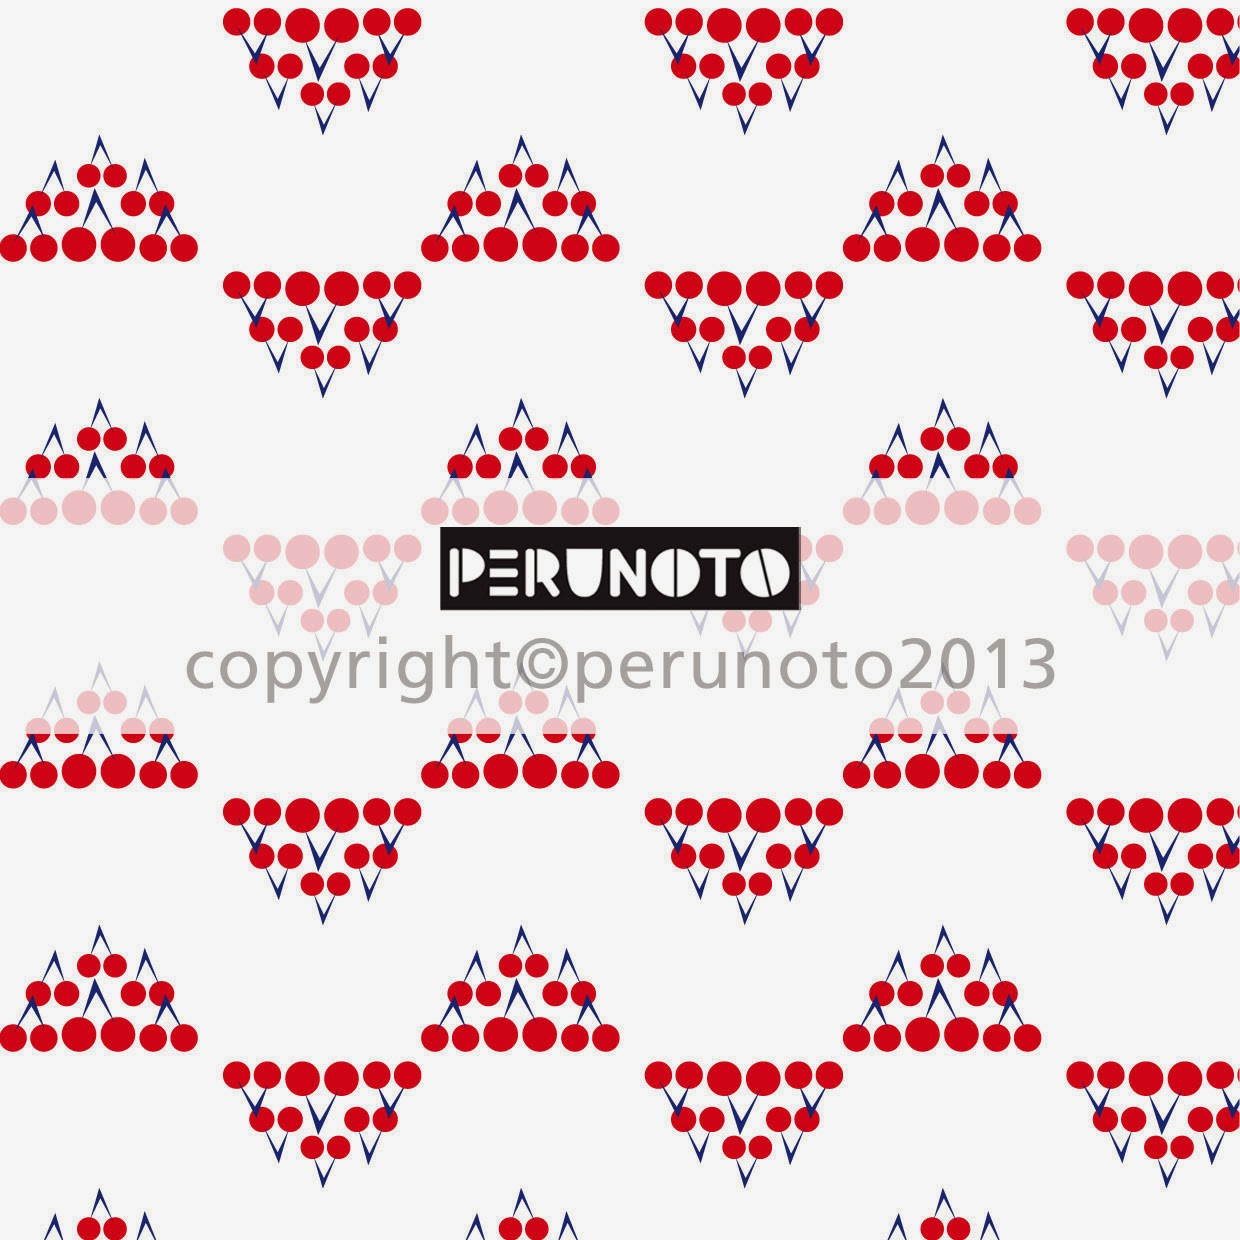 http://www.spoonflower.com/contest_voters/new?contest_id=193